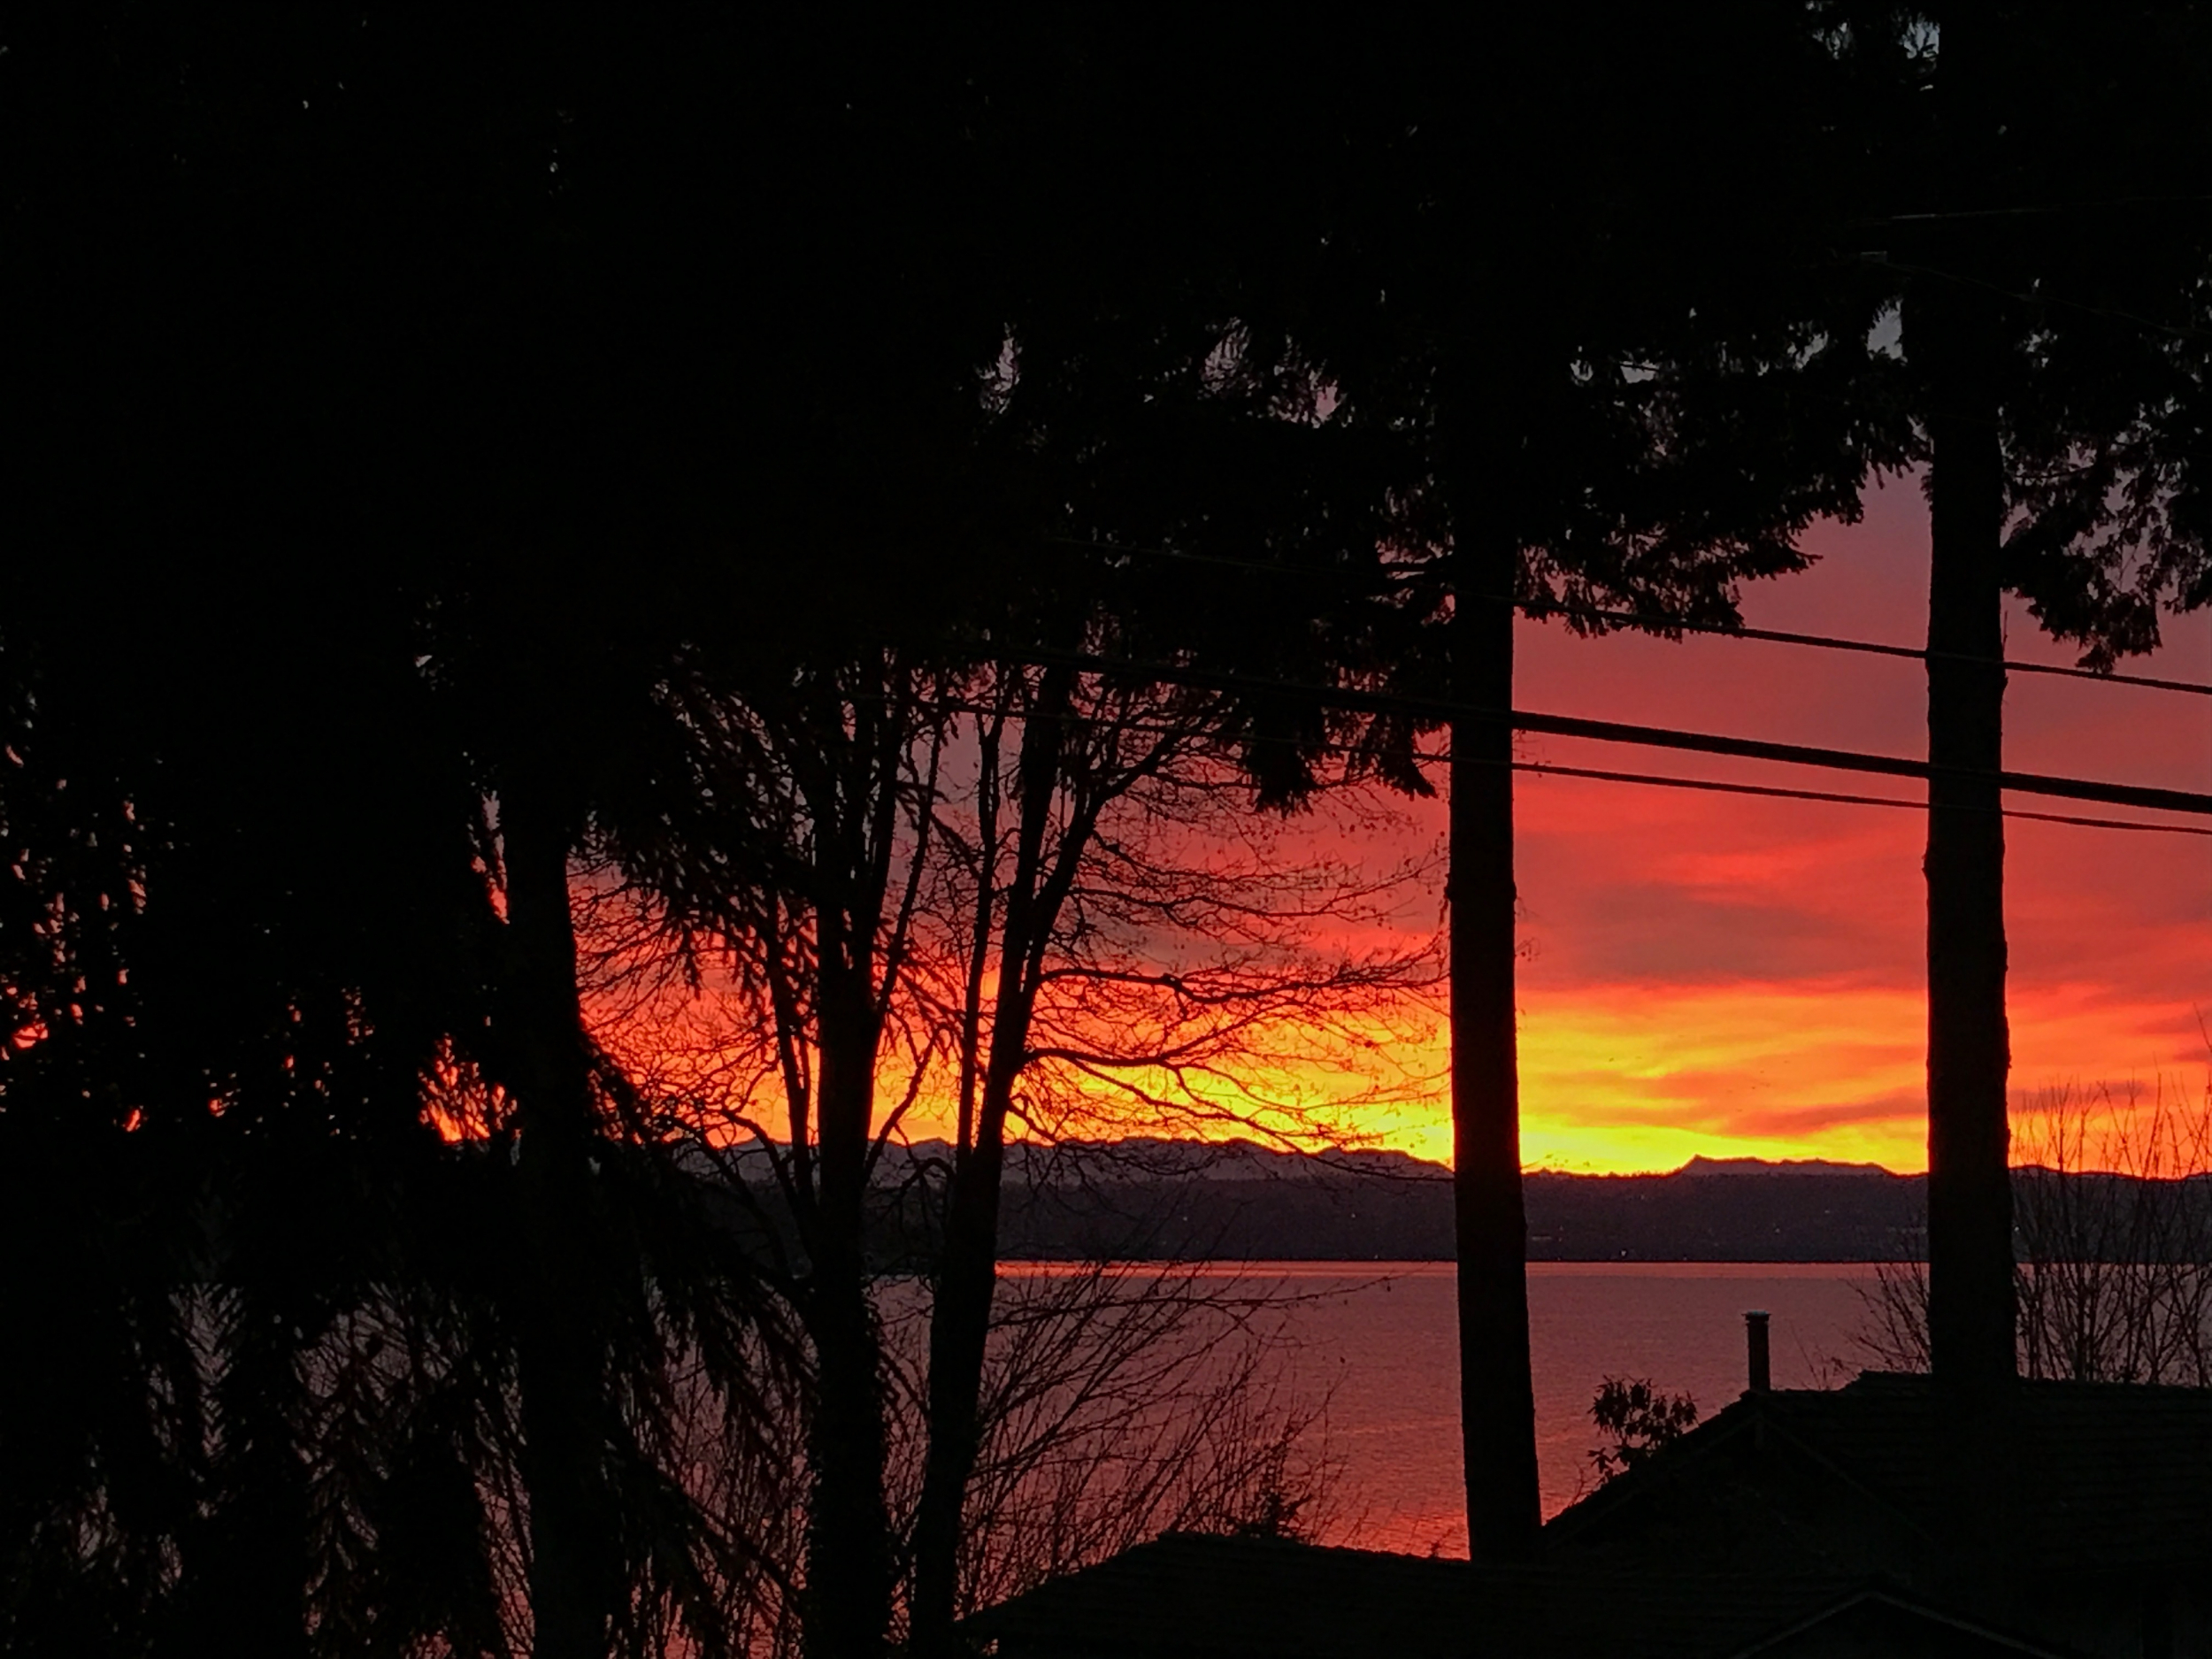 19. Sunset in Seattle